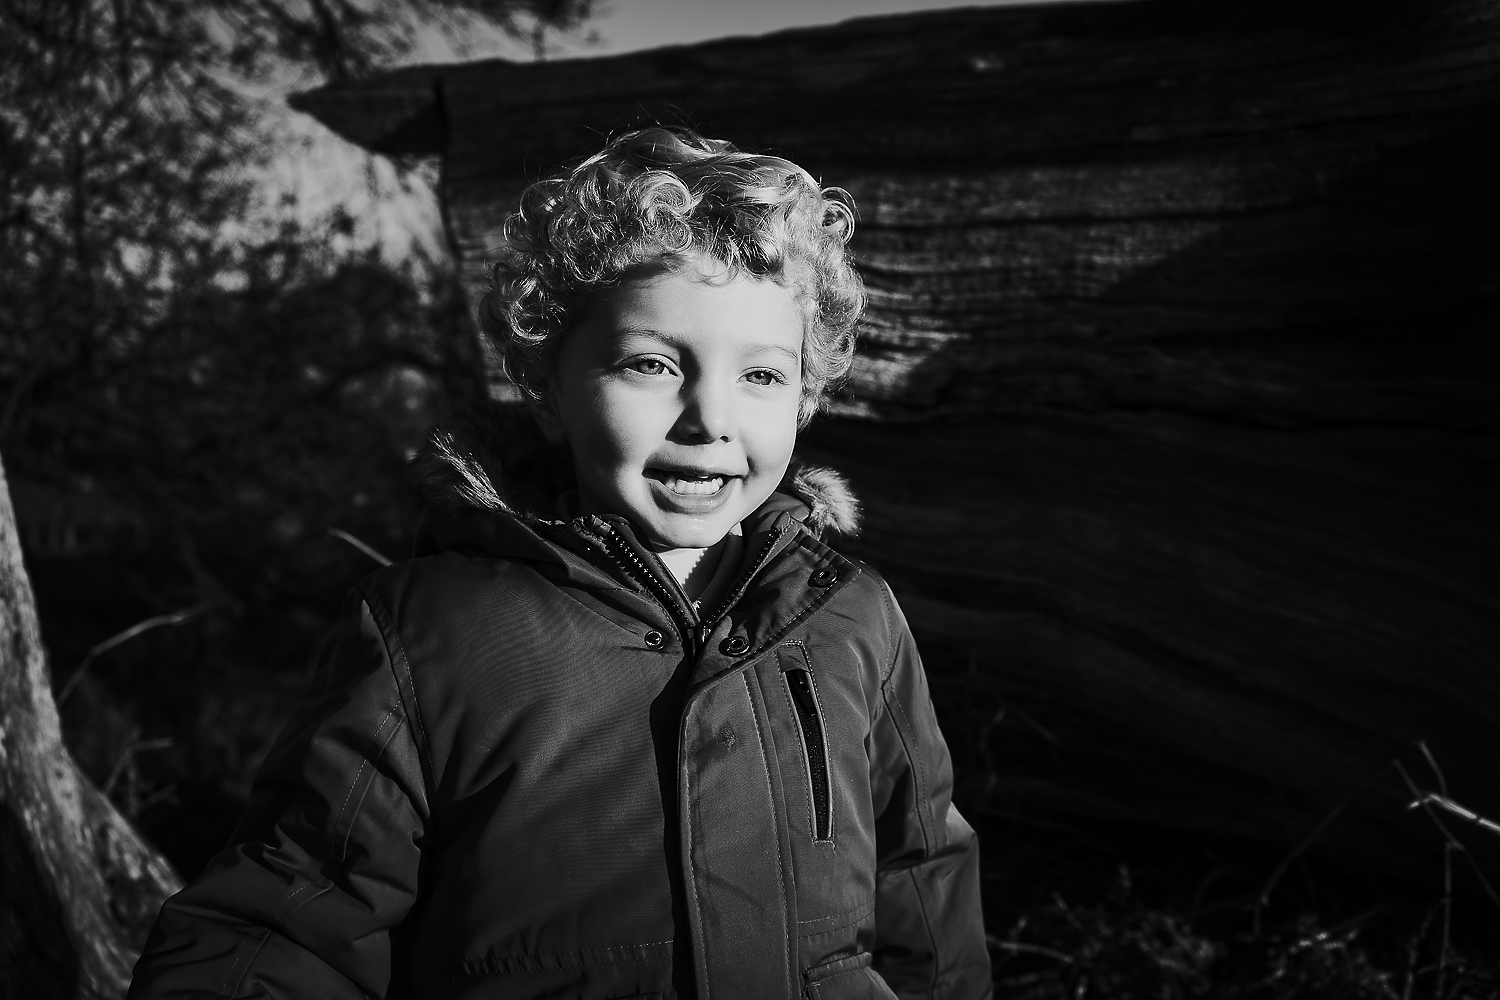 BOOKING A FAMILY PHOTO SESSION BLACK AND WHITE SHOT OF LITTLE BOY WITH CURLY HAIR